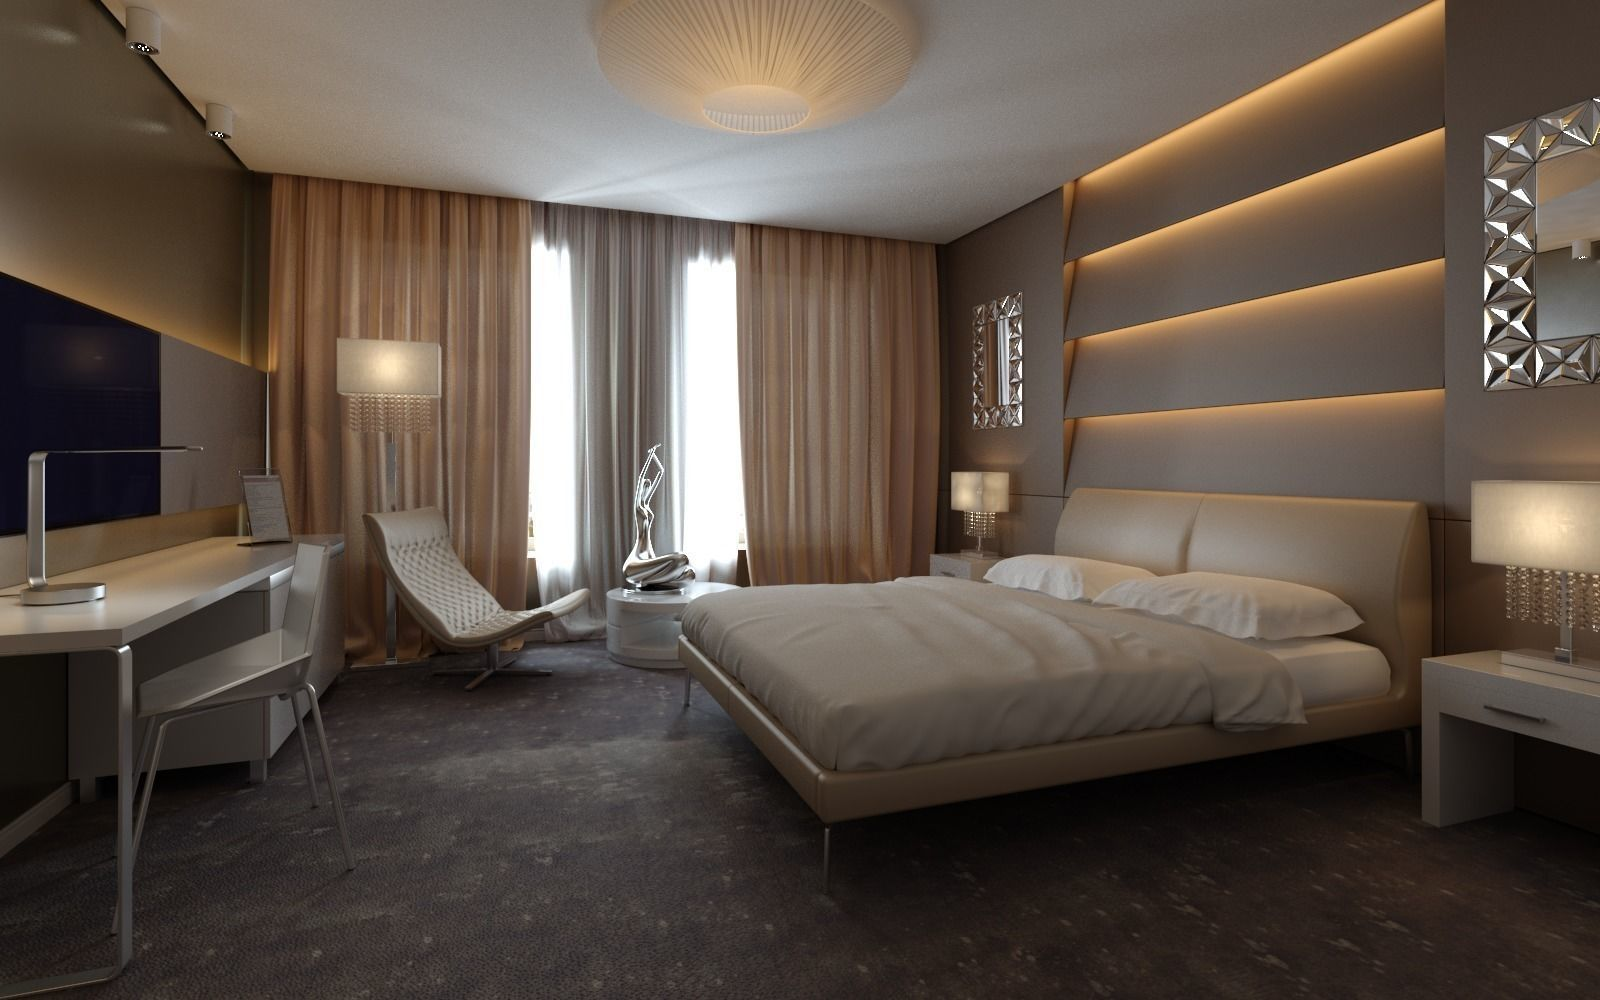 Exclusive European Hotel Room Design Idea 3D model MAX FBX DWG on Model Bedroom Ideas  id=25620